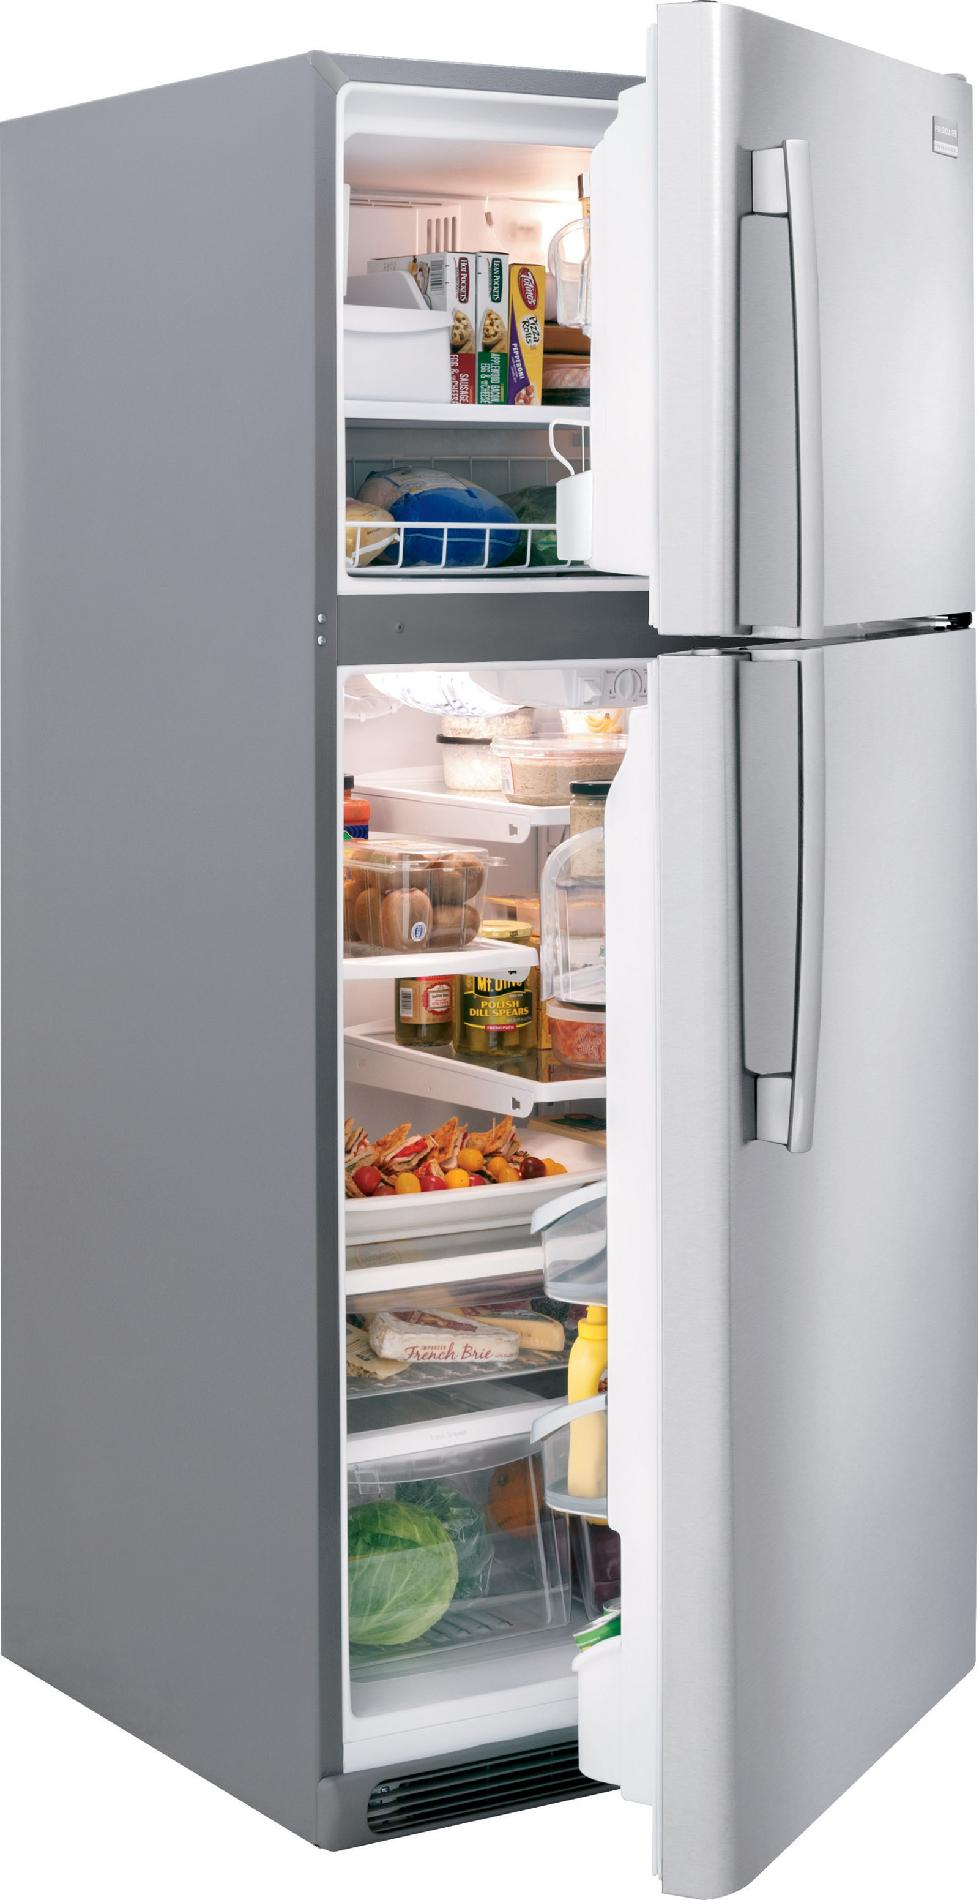 Frigidaire Professional 18.3 cu. ft. Top-Freezer Refrigerator - Stainless Steel